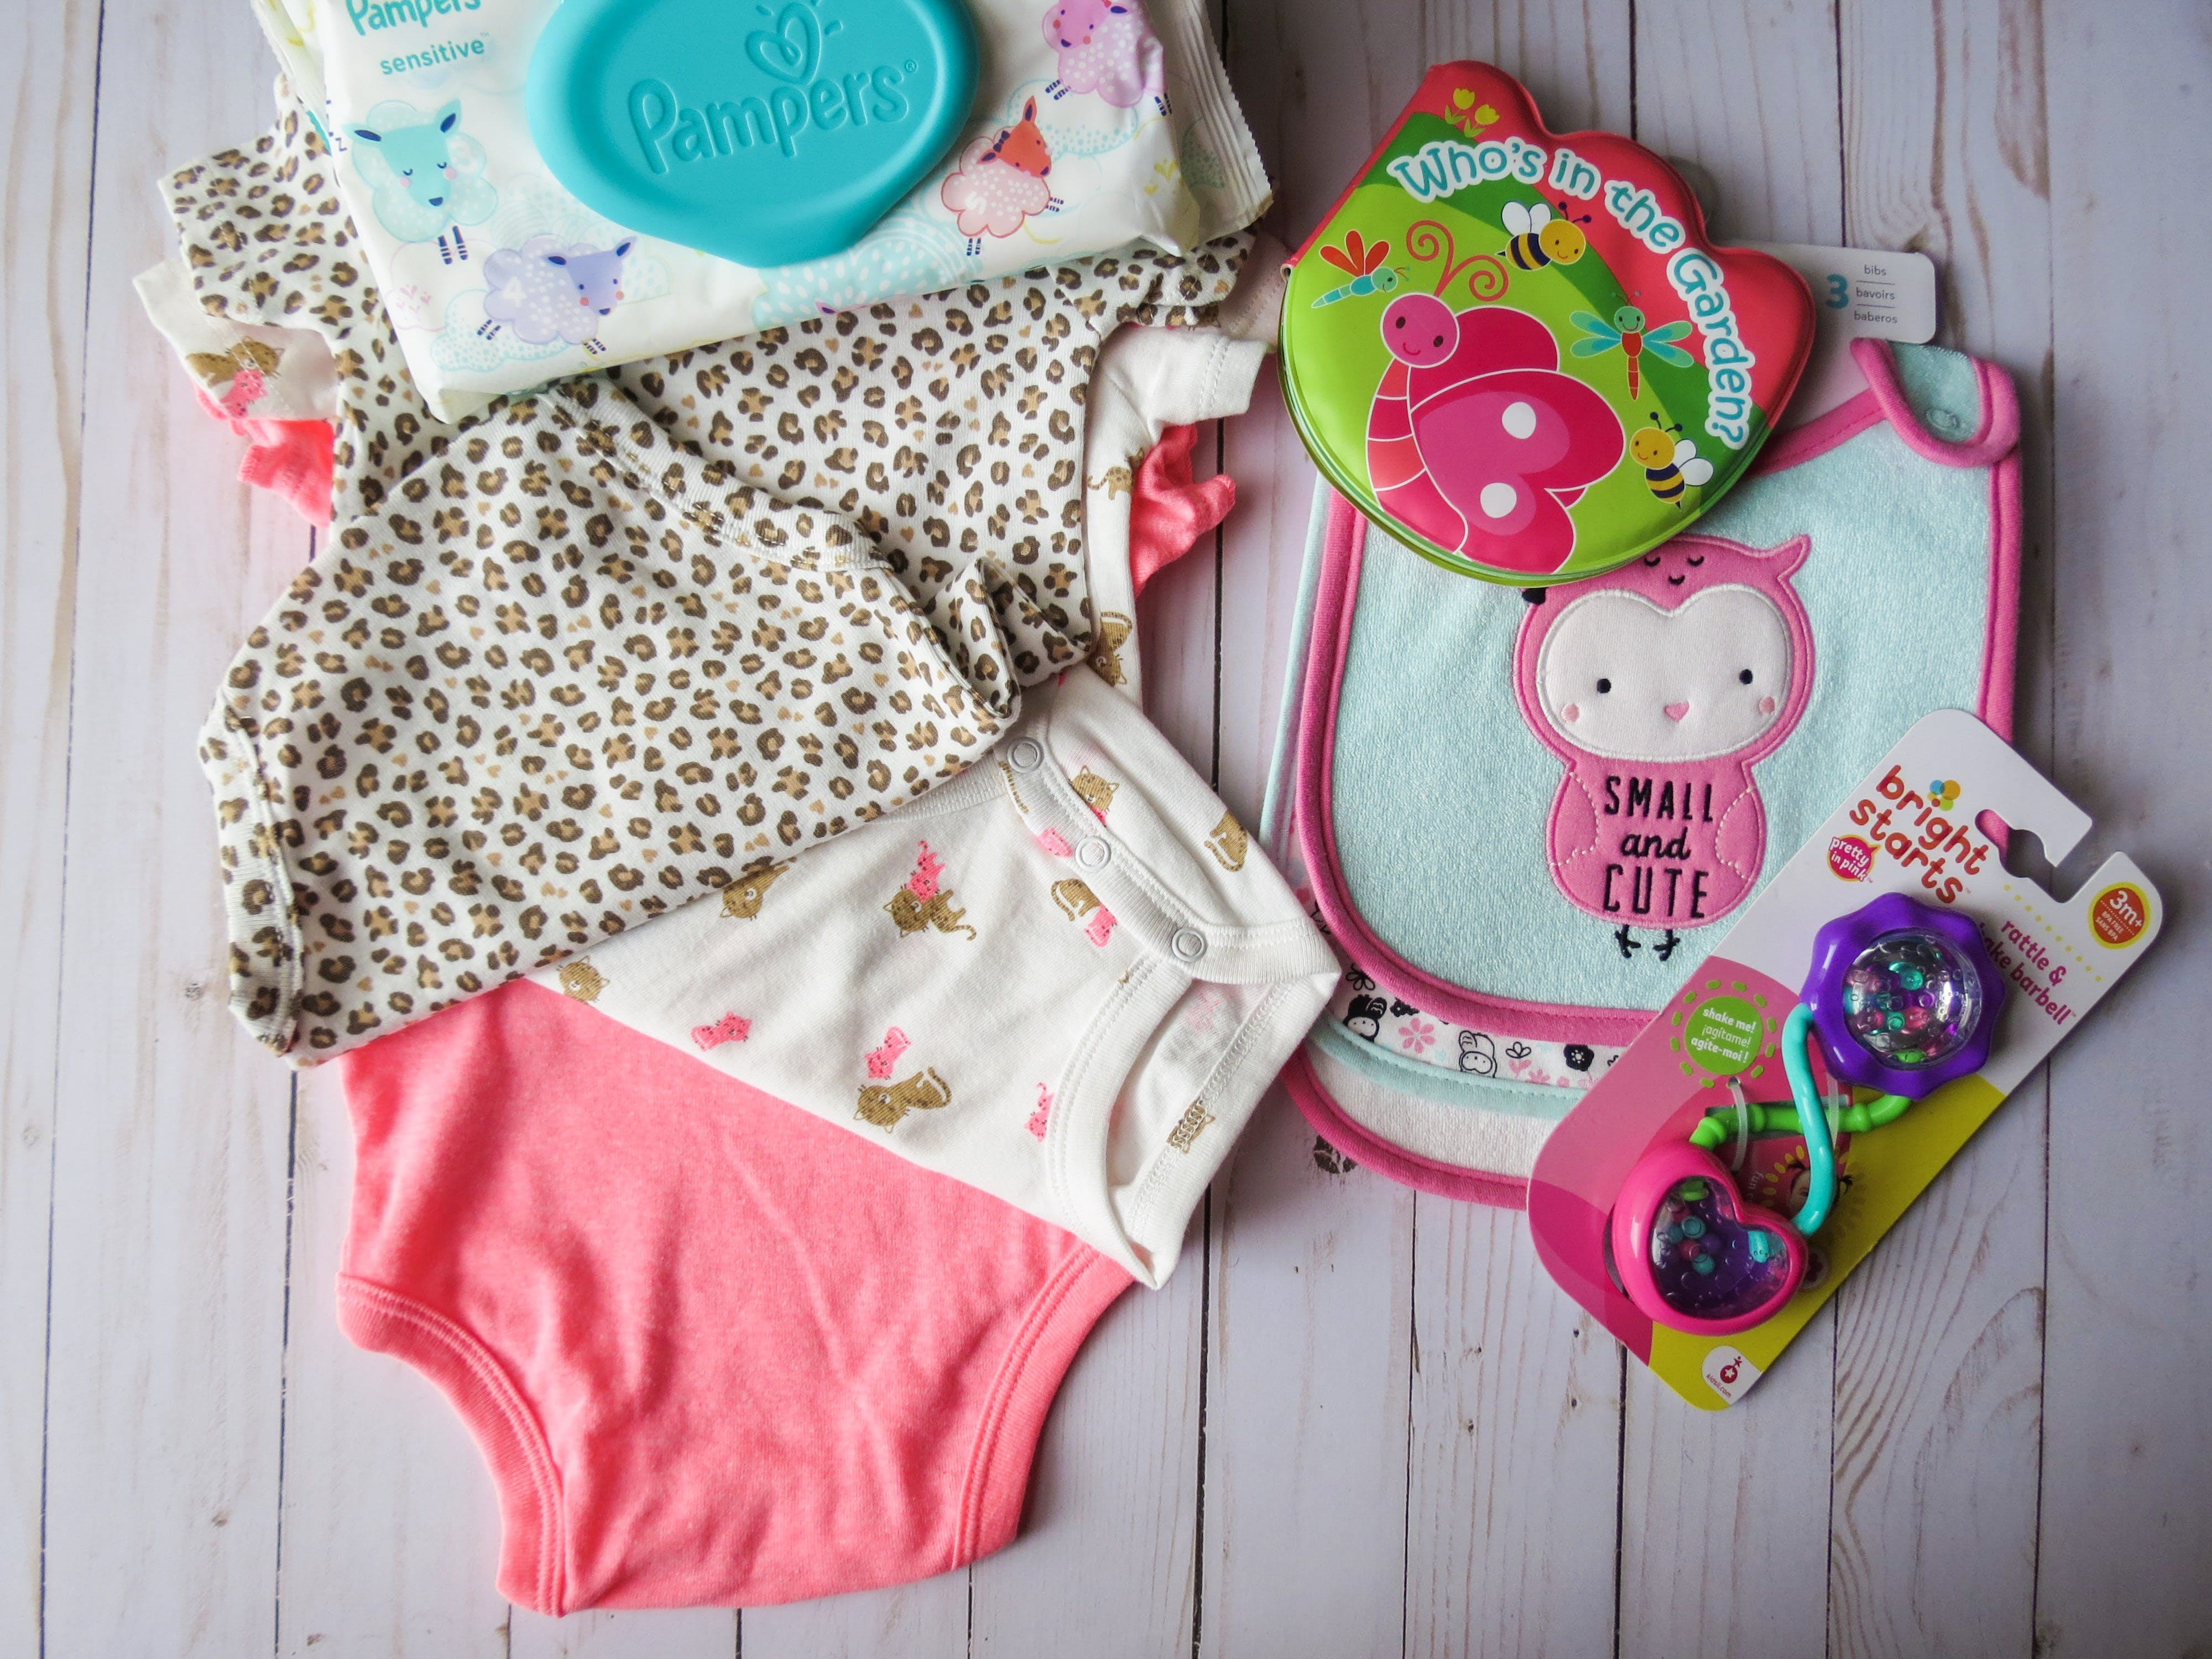 Free stock photo of baby, baby clothes, baby essentials, baby girl